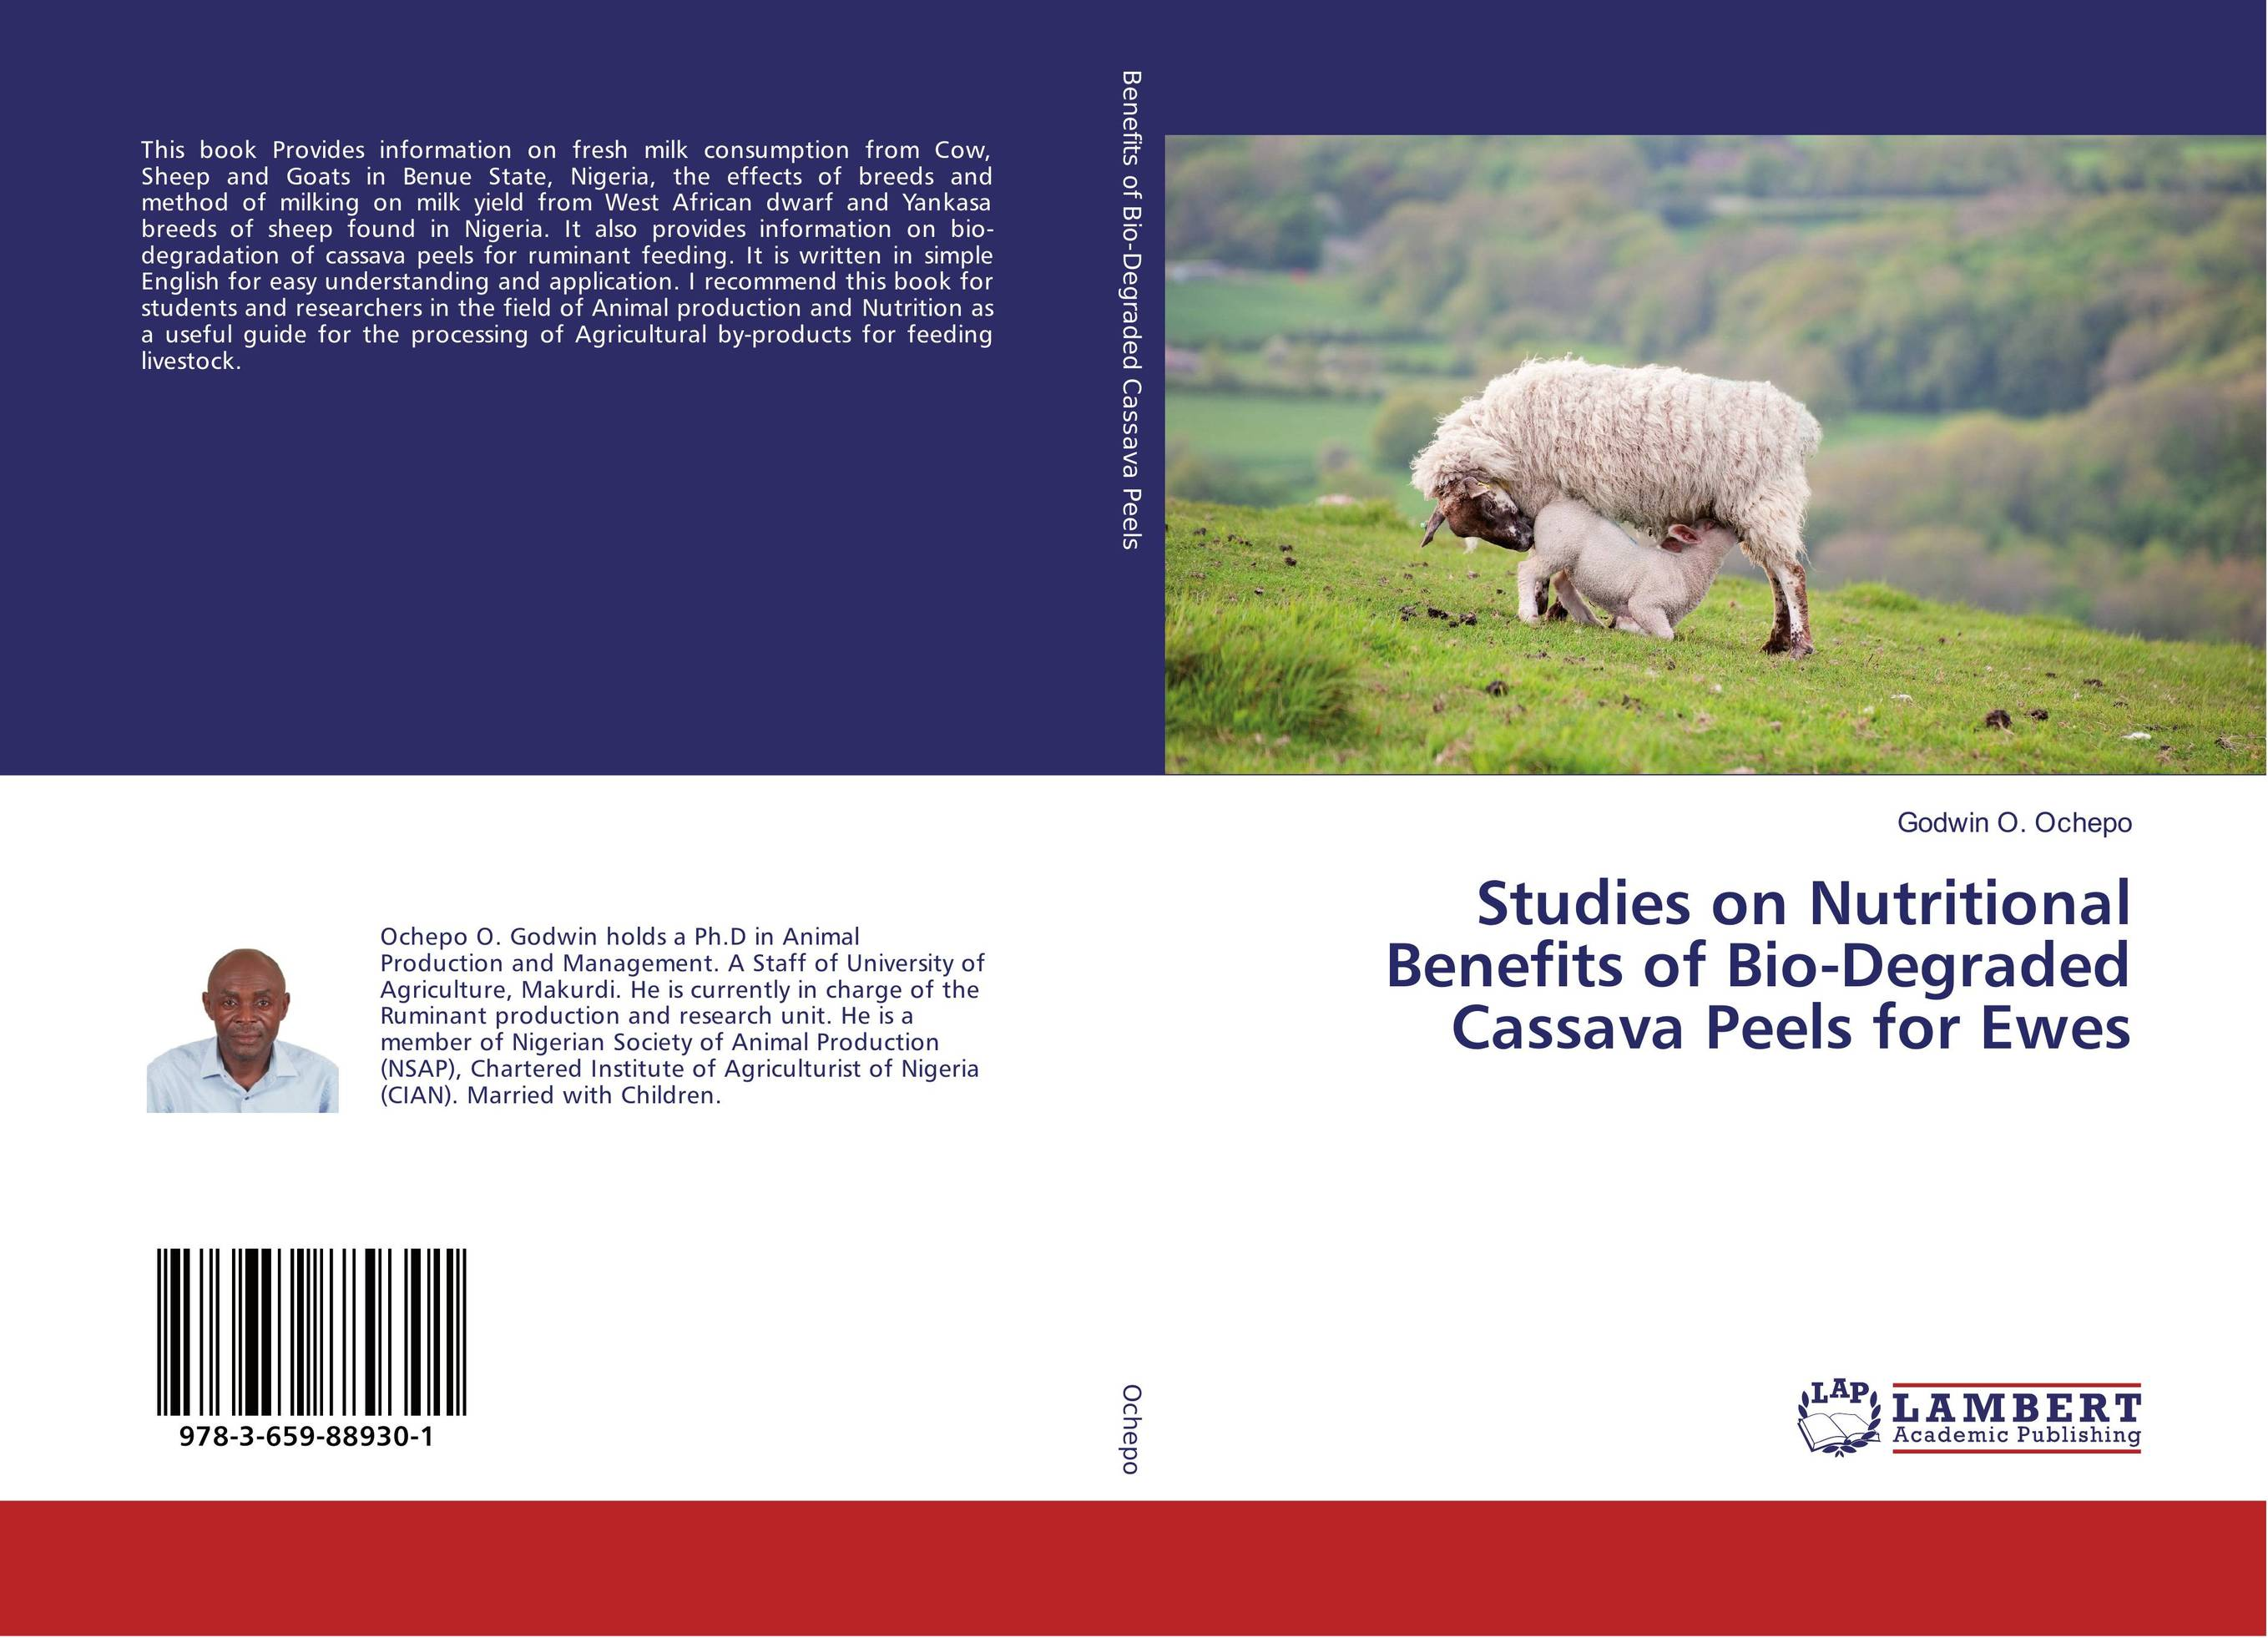 Studies on Nutritional Benefits of Bio-Degraded Cassava Peels for Ewes